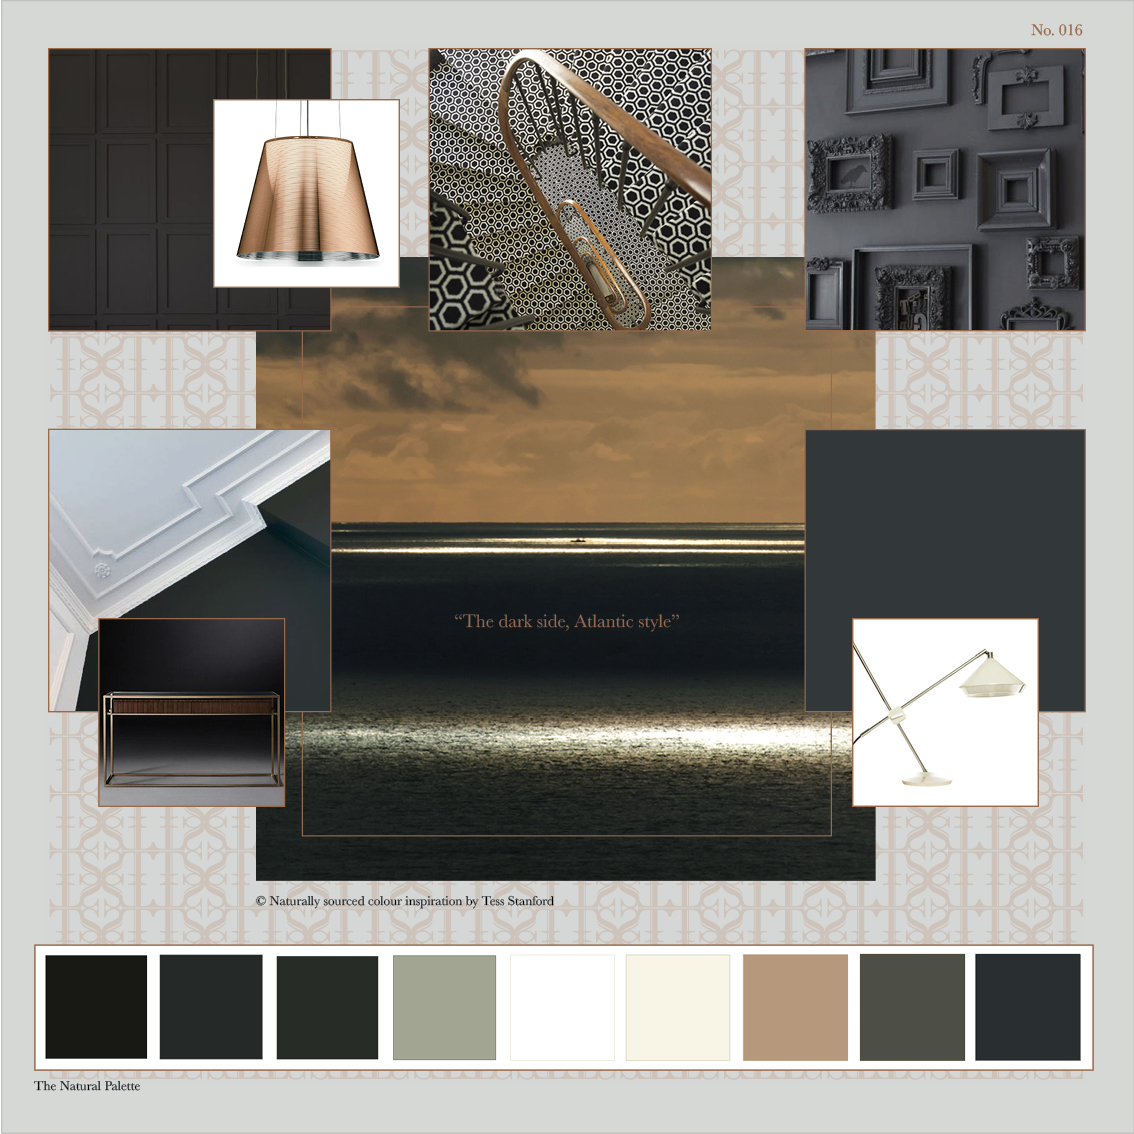 Tess Stanford Interior Design Colour Inspiration Blog No 016